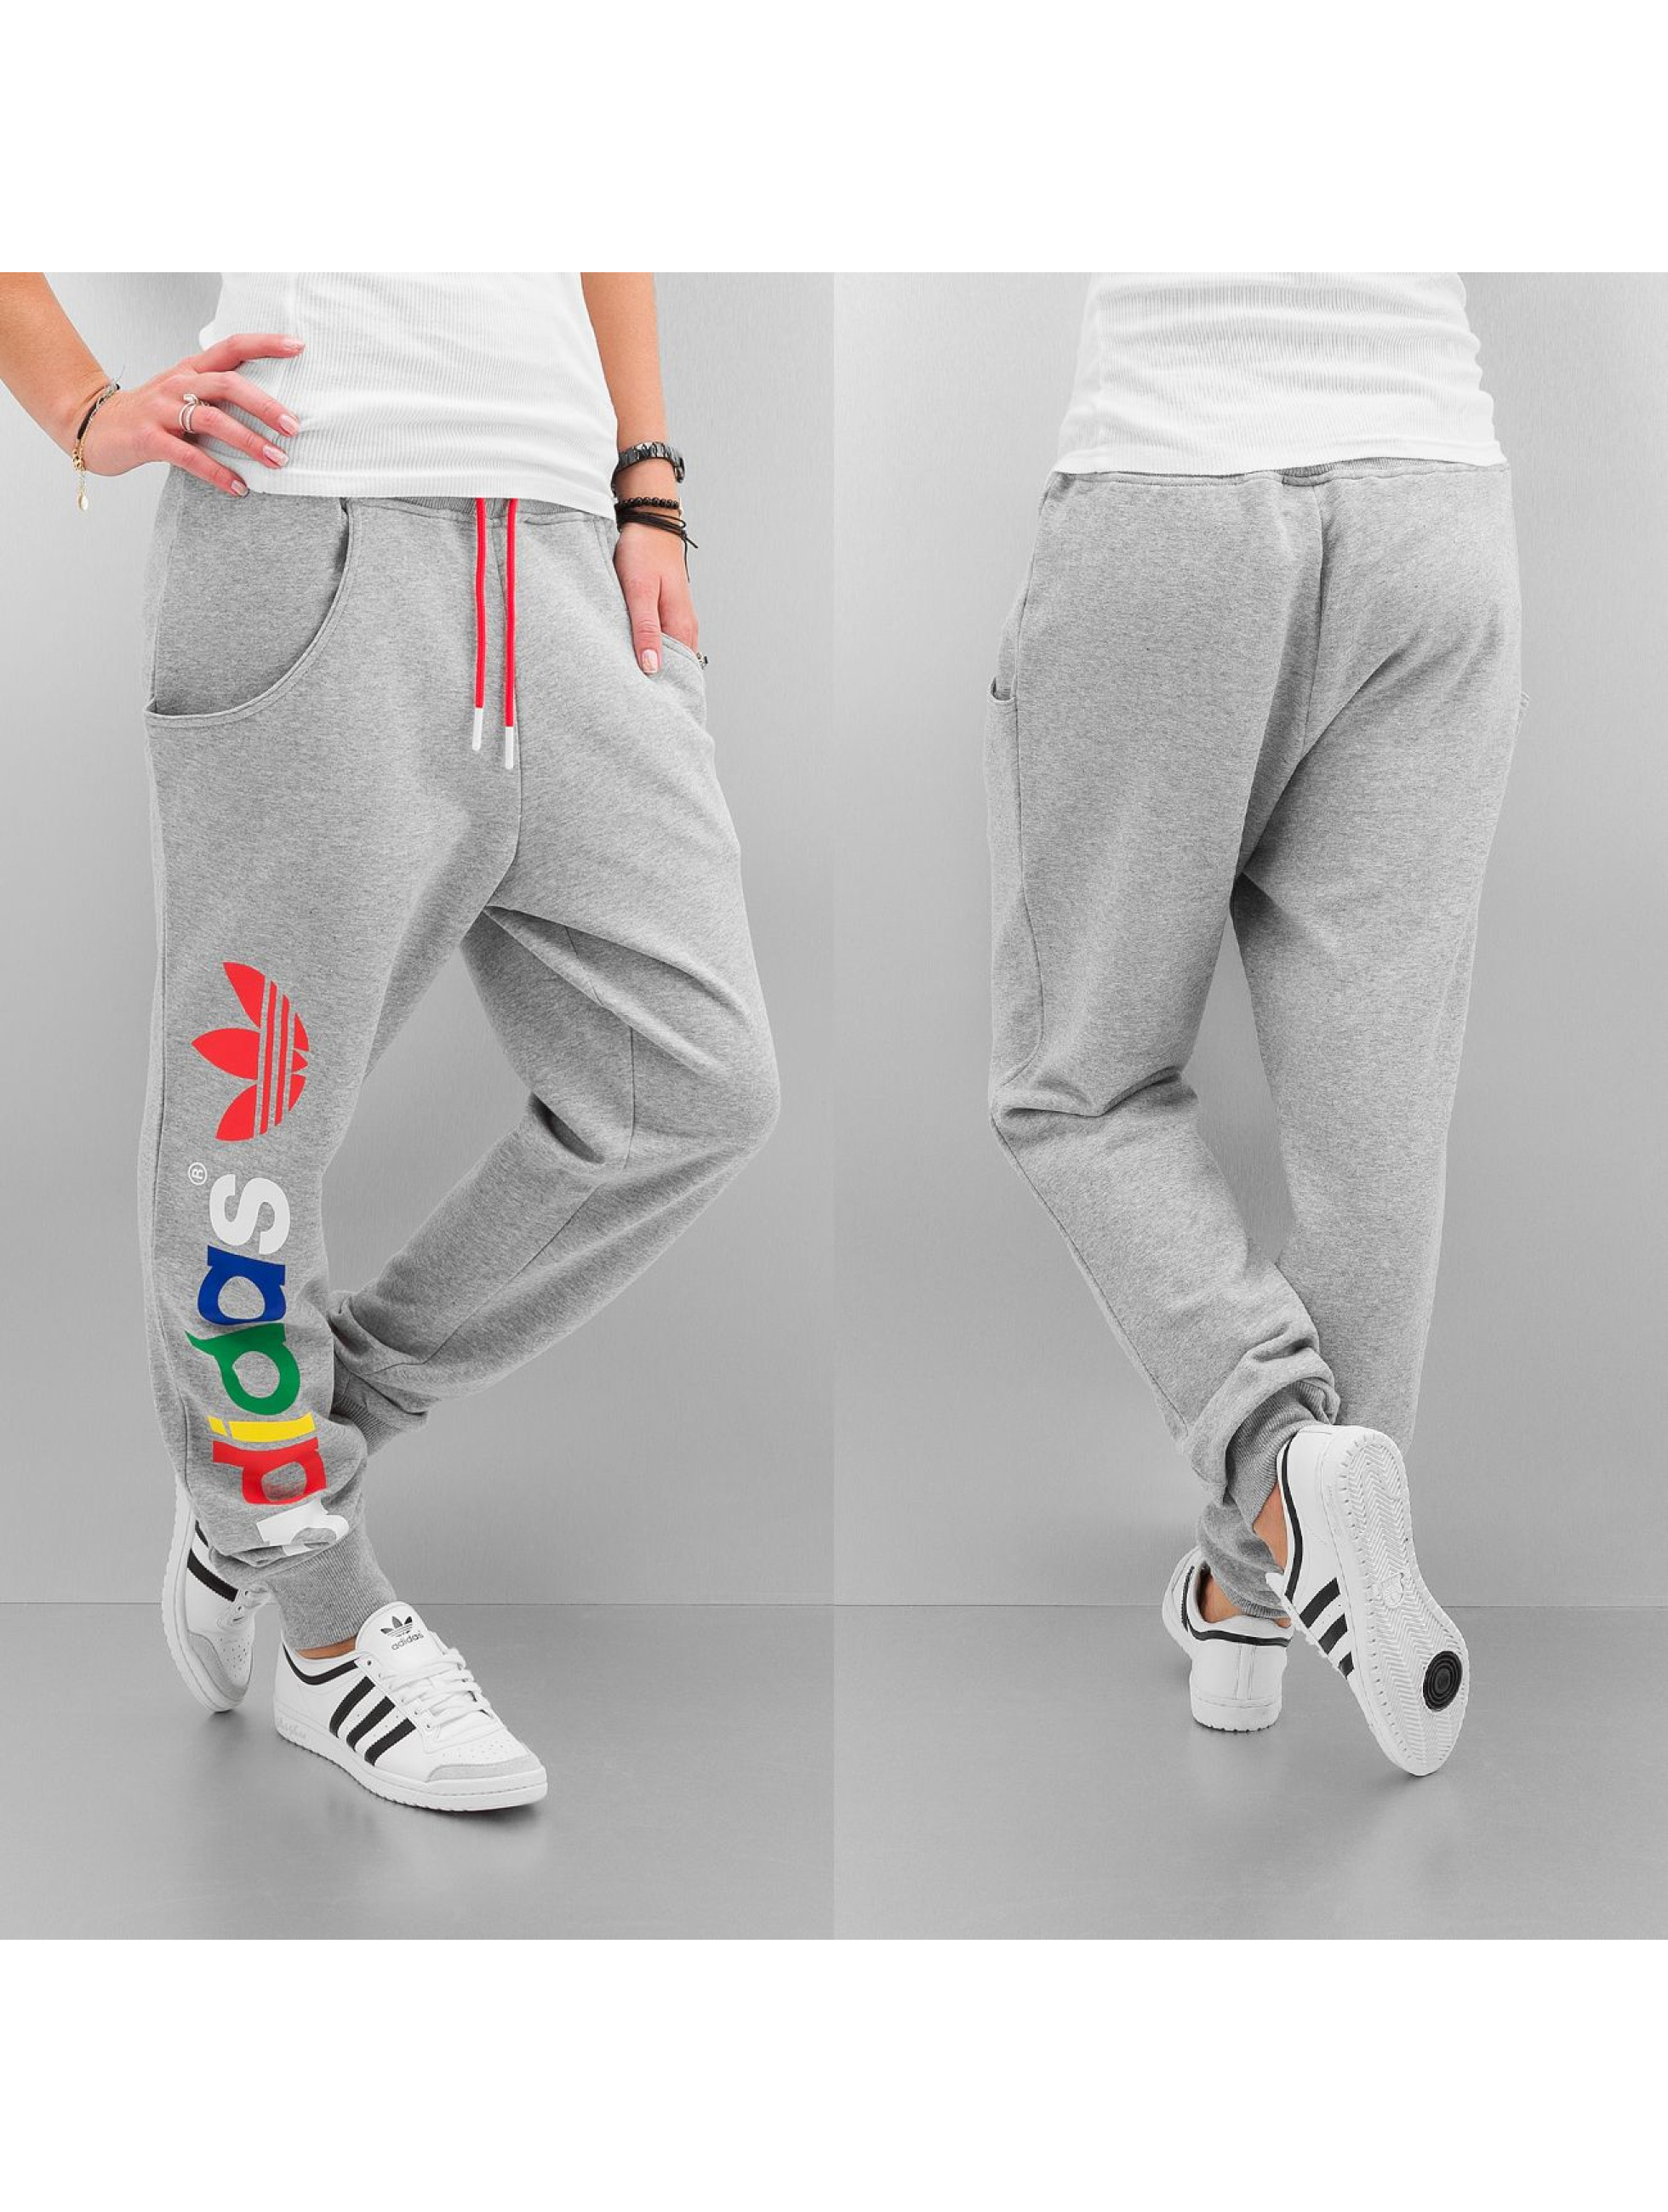 Adidas originals baggy pants pictures to pin on pinterest